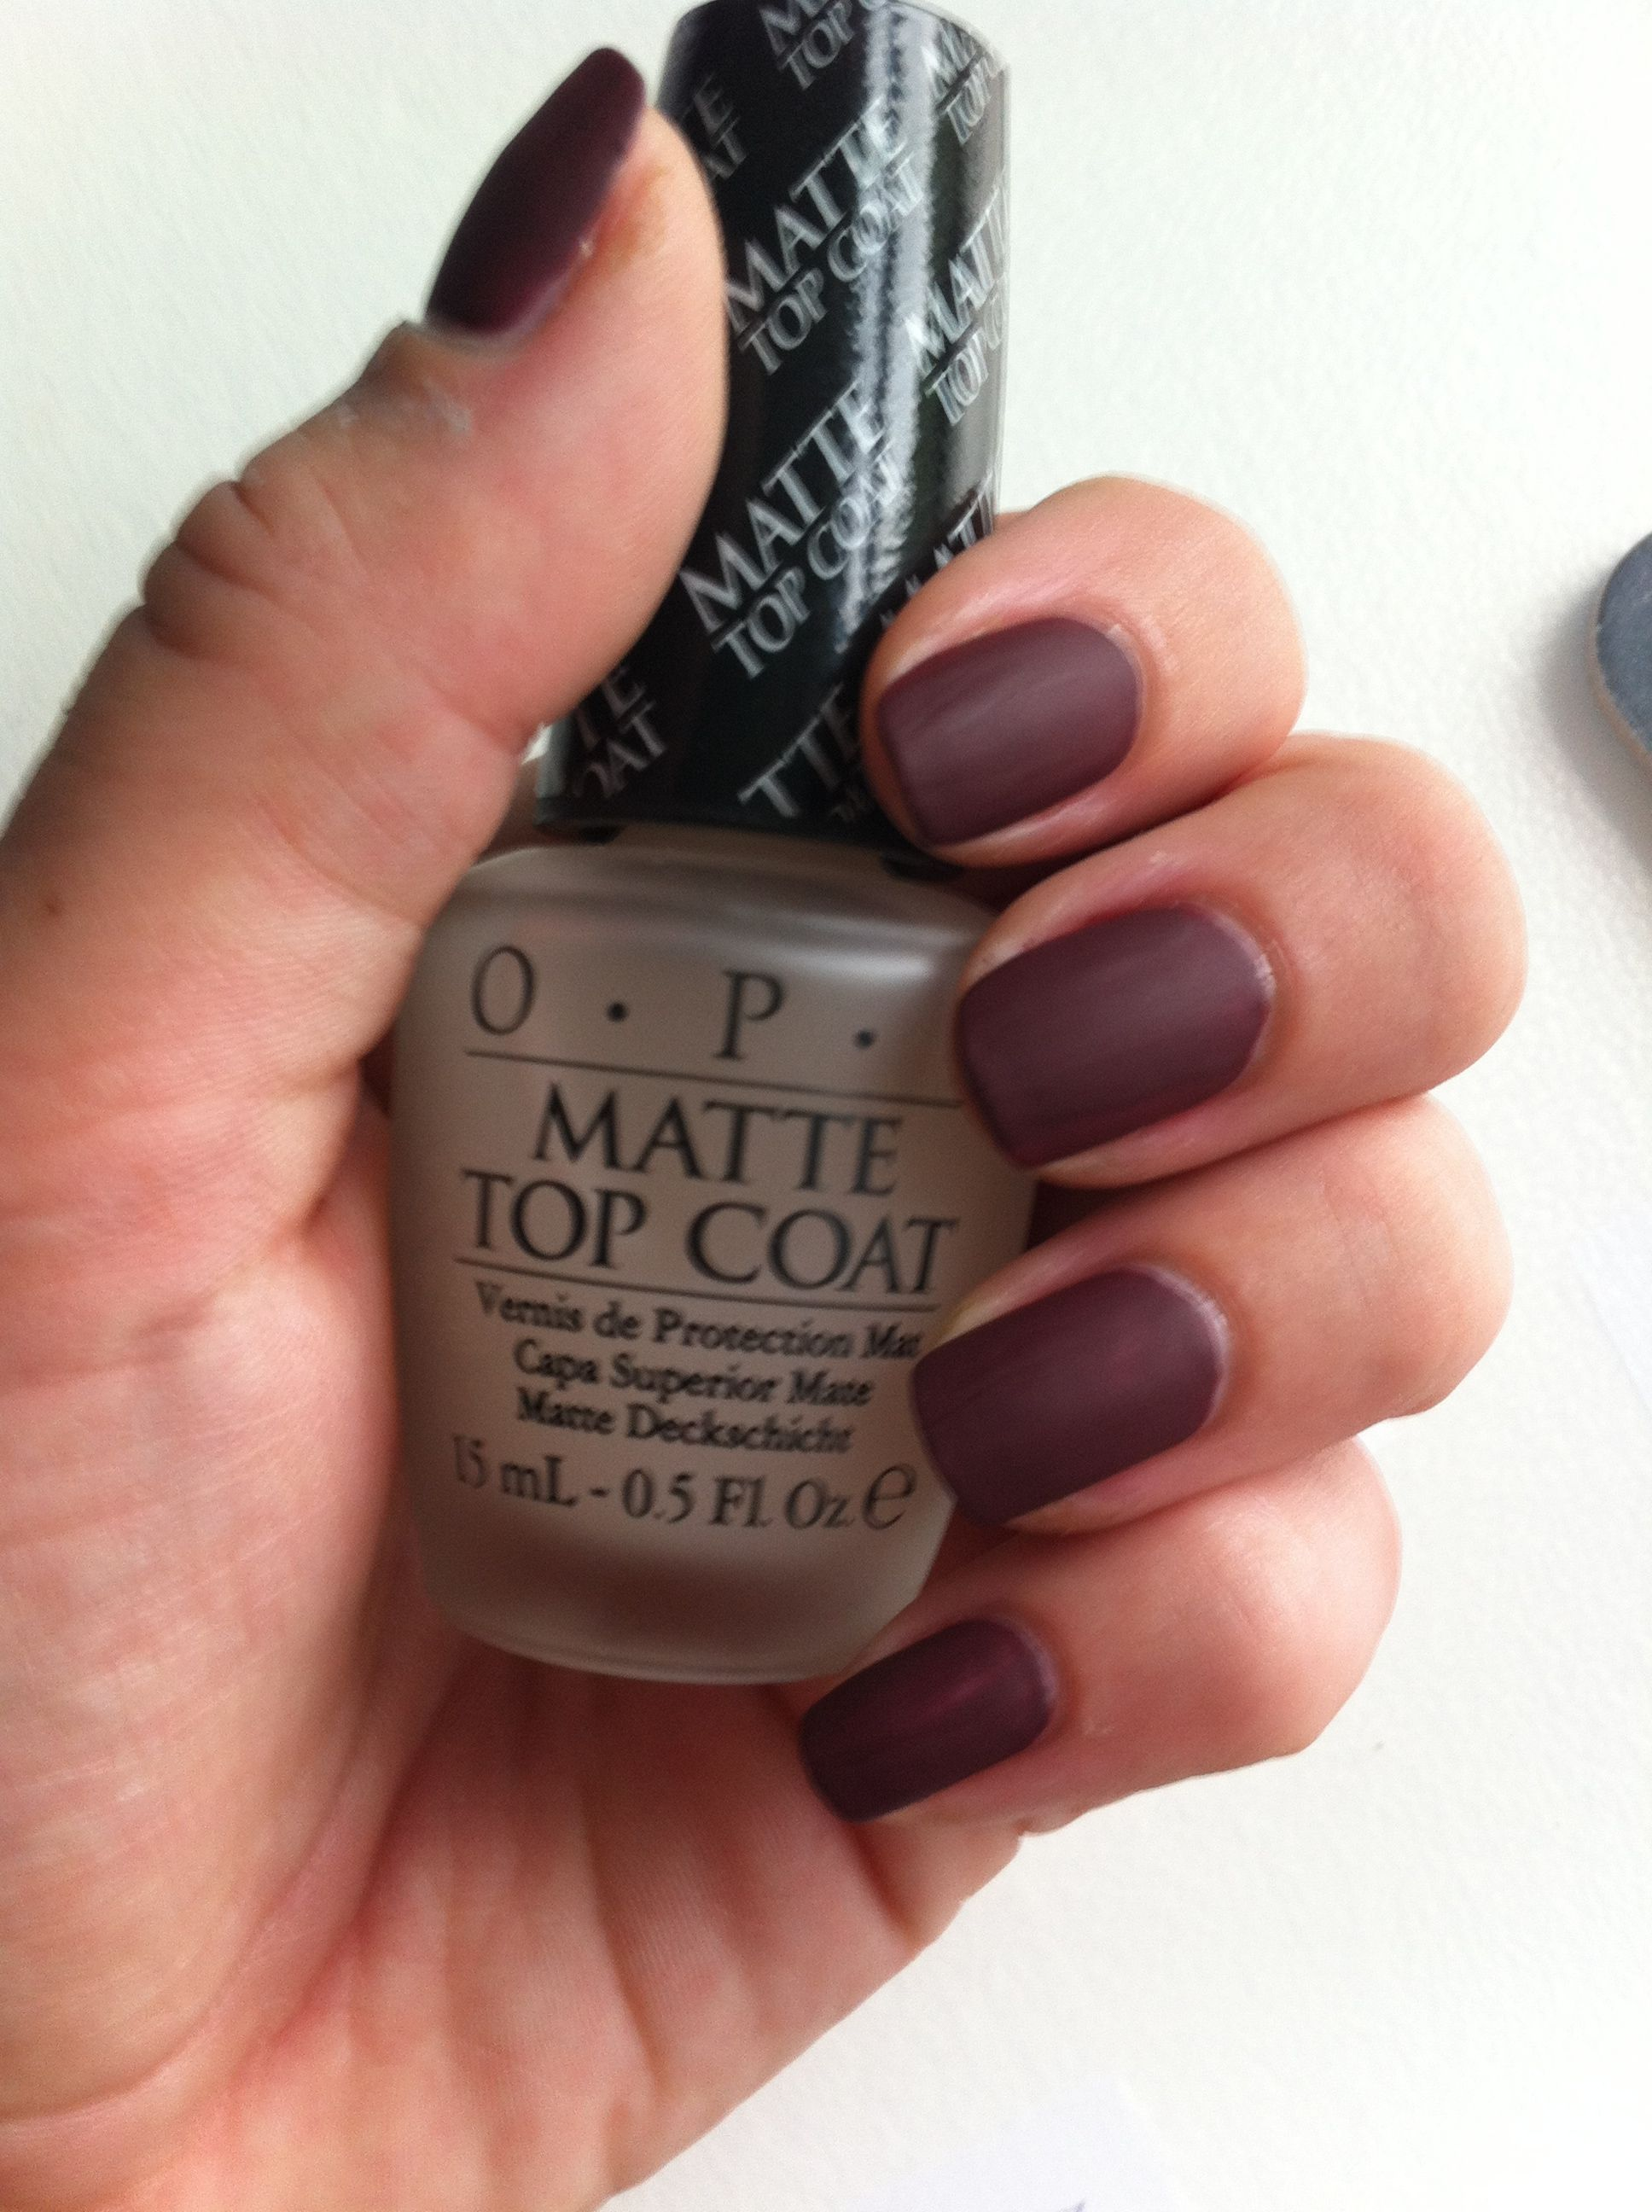 Starting out the fall 2013 Sunday, OPI Matte + Bordeaux nail polish ...